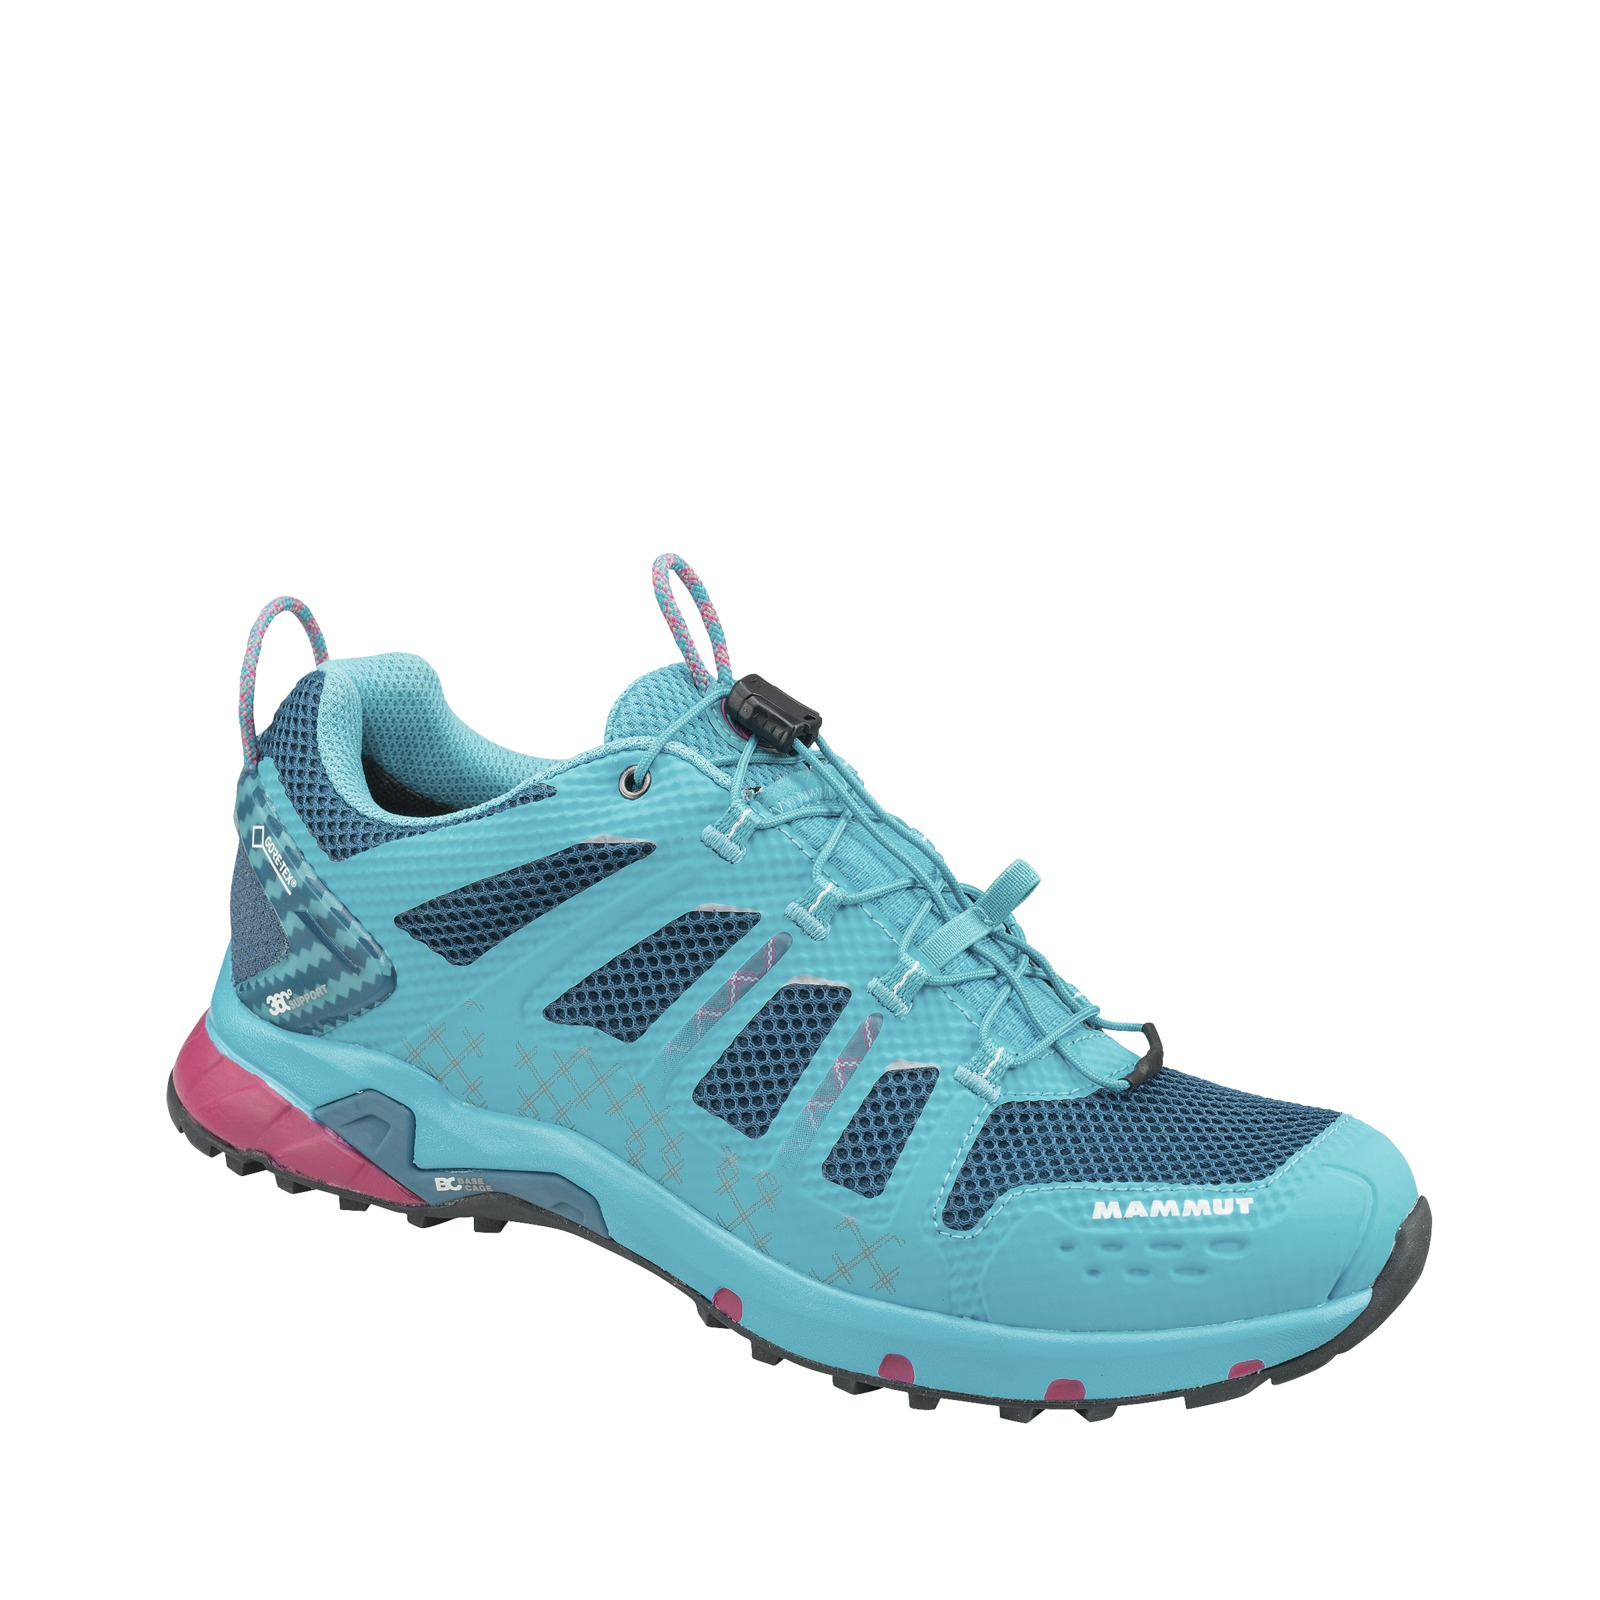 MAMMUT T AENERGY LOW GTX® WOMEN -30% 99bb3ece4b